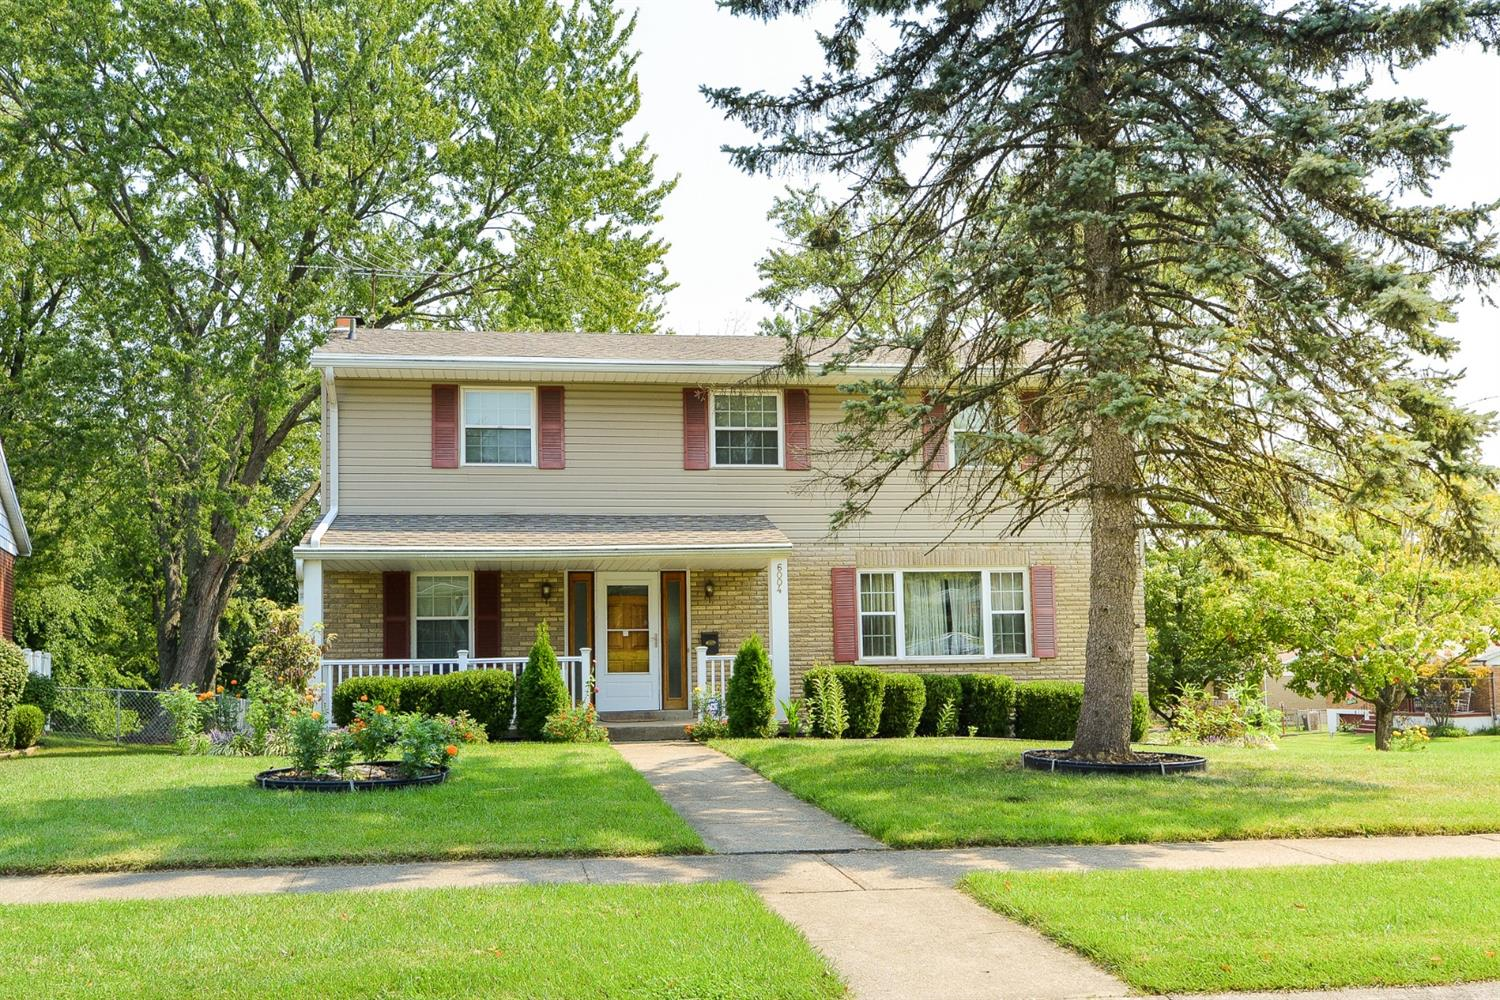 6004 Seiler Drive, Green Twp, Ohio 45239, 4 Bedrooms Bedrooms, 10 Rooms Rooms,2 BathroomsBathrooms,Single Family Residence,For Sale,Seiler,1715514